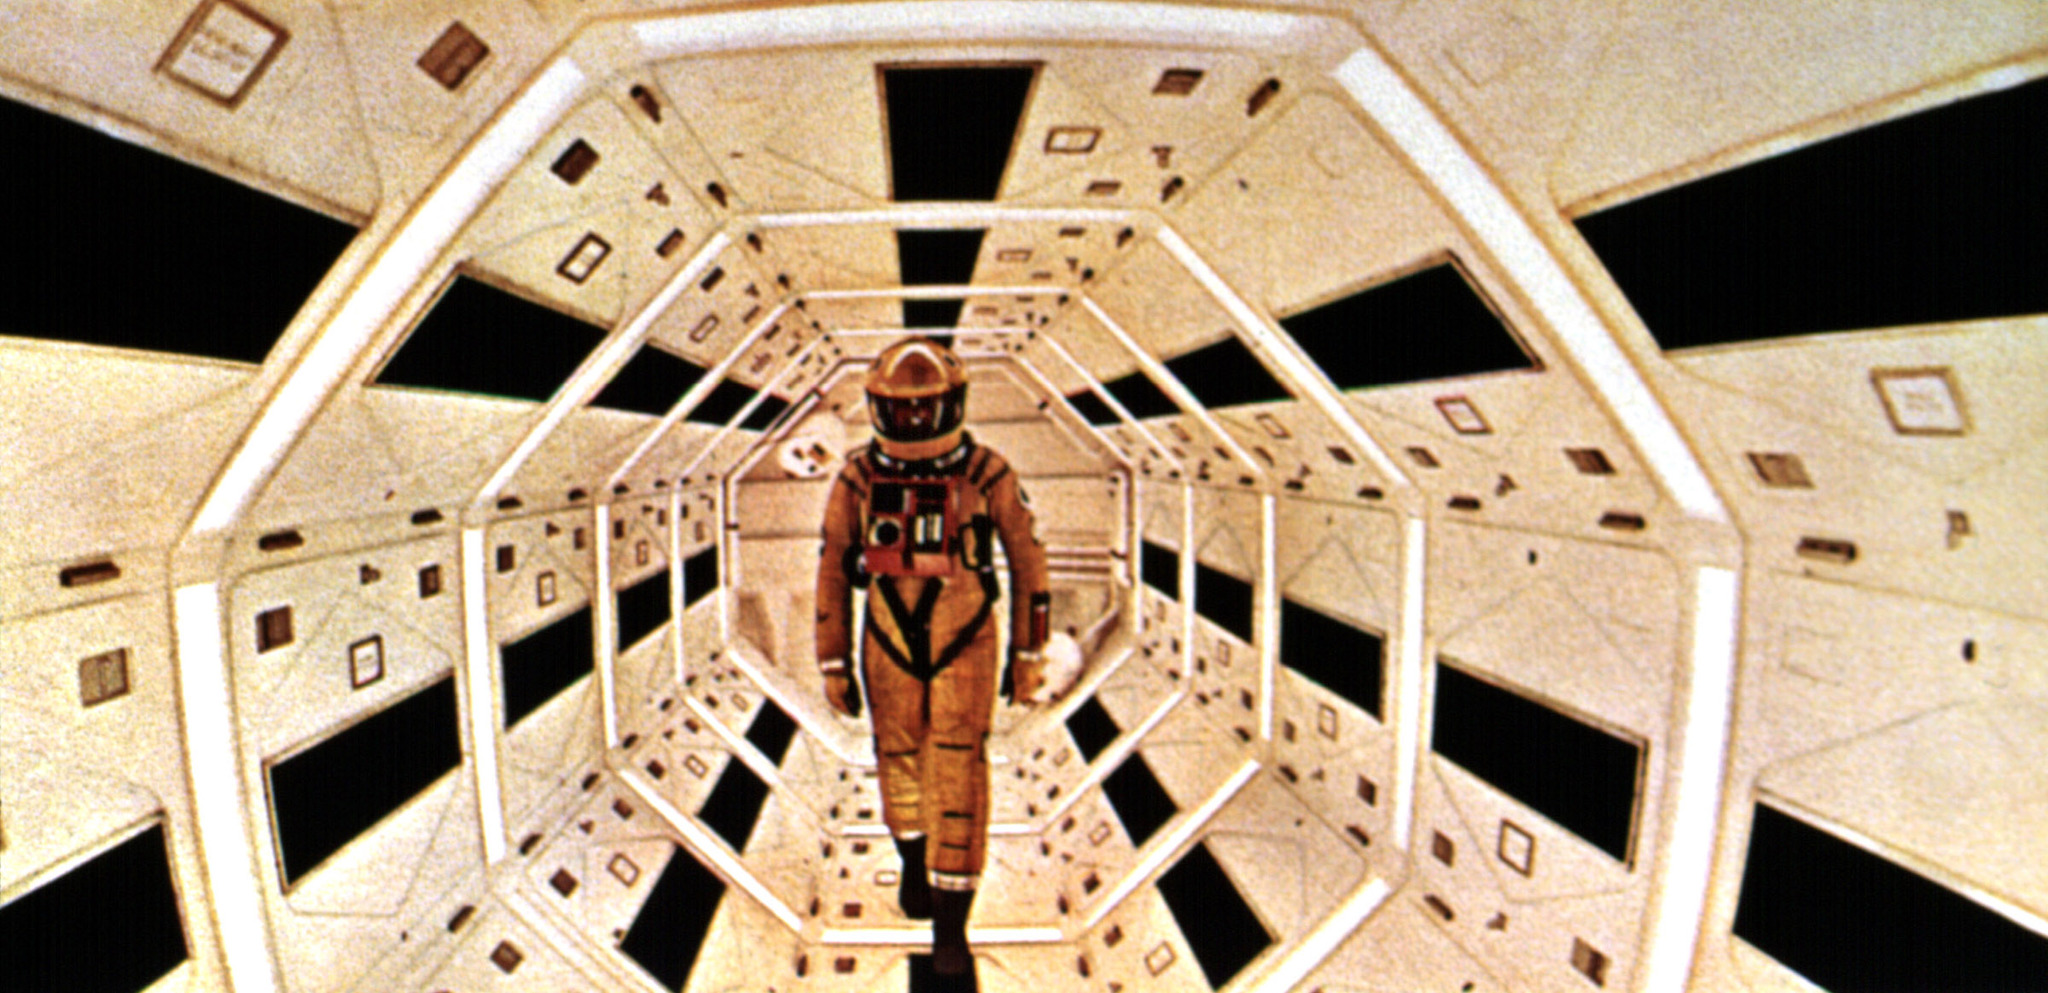 Gary Lockwood in 2001: A Space Odyssey (1968)